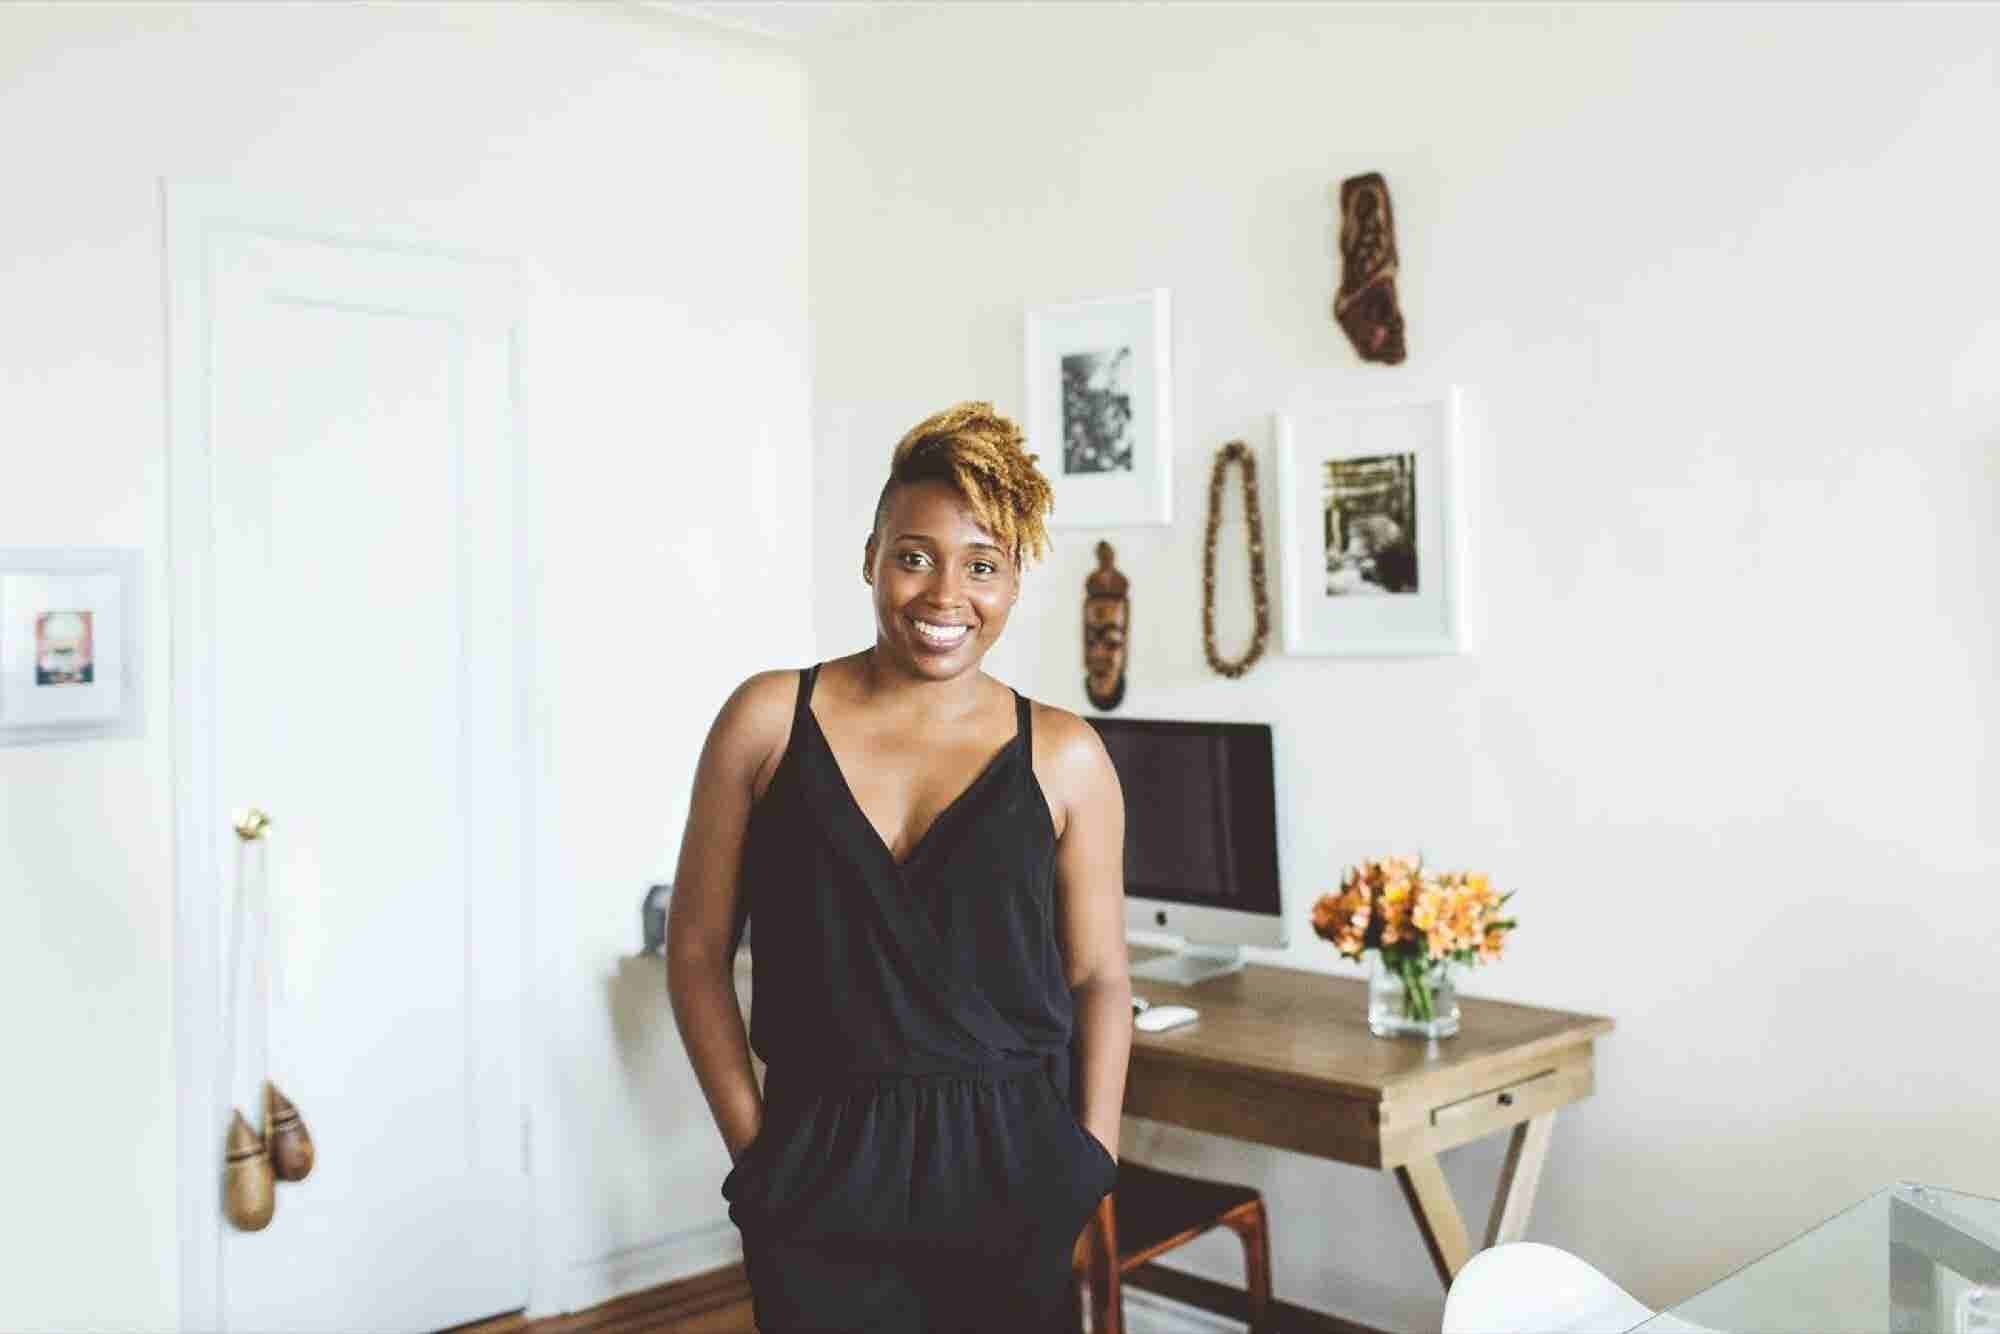 Podcast: This Trait Is Helping One Beauty Entrepreneur Build Something...